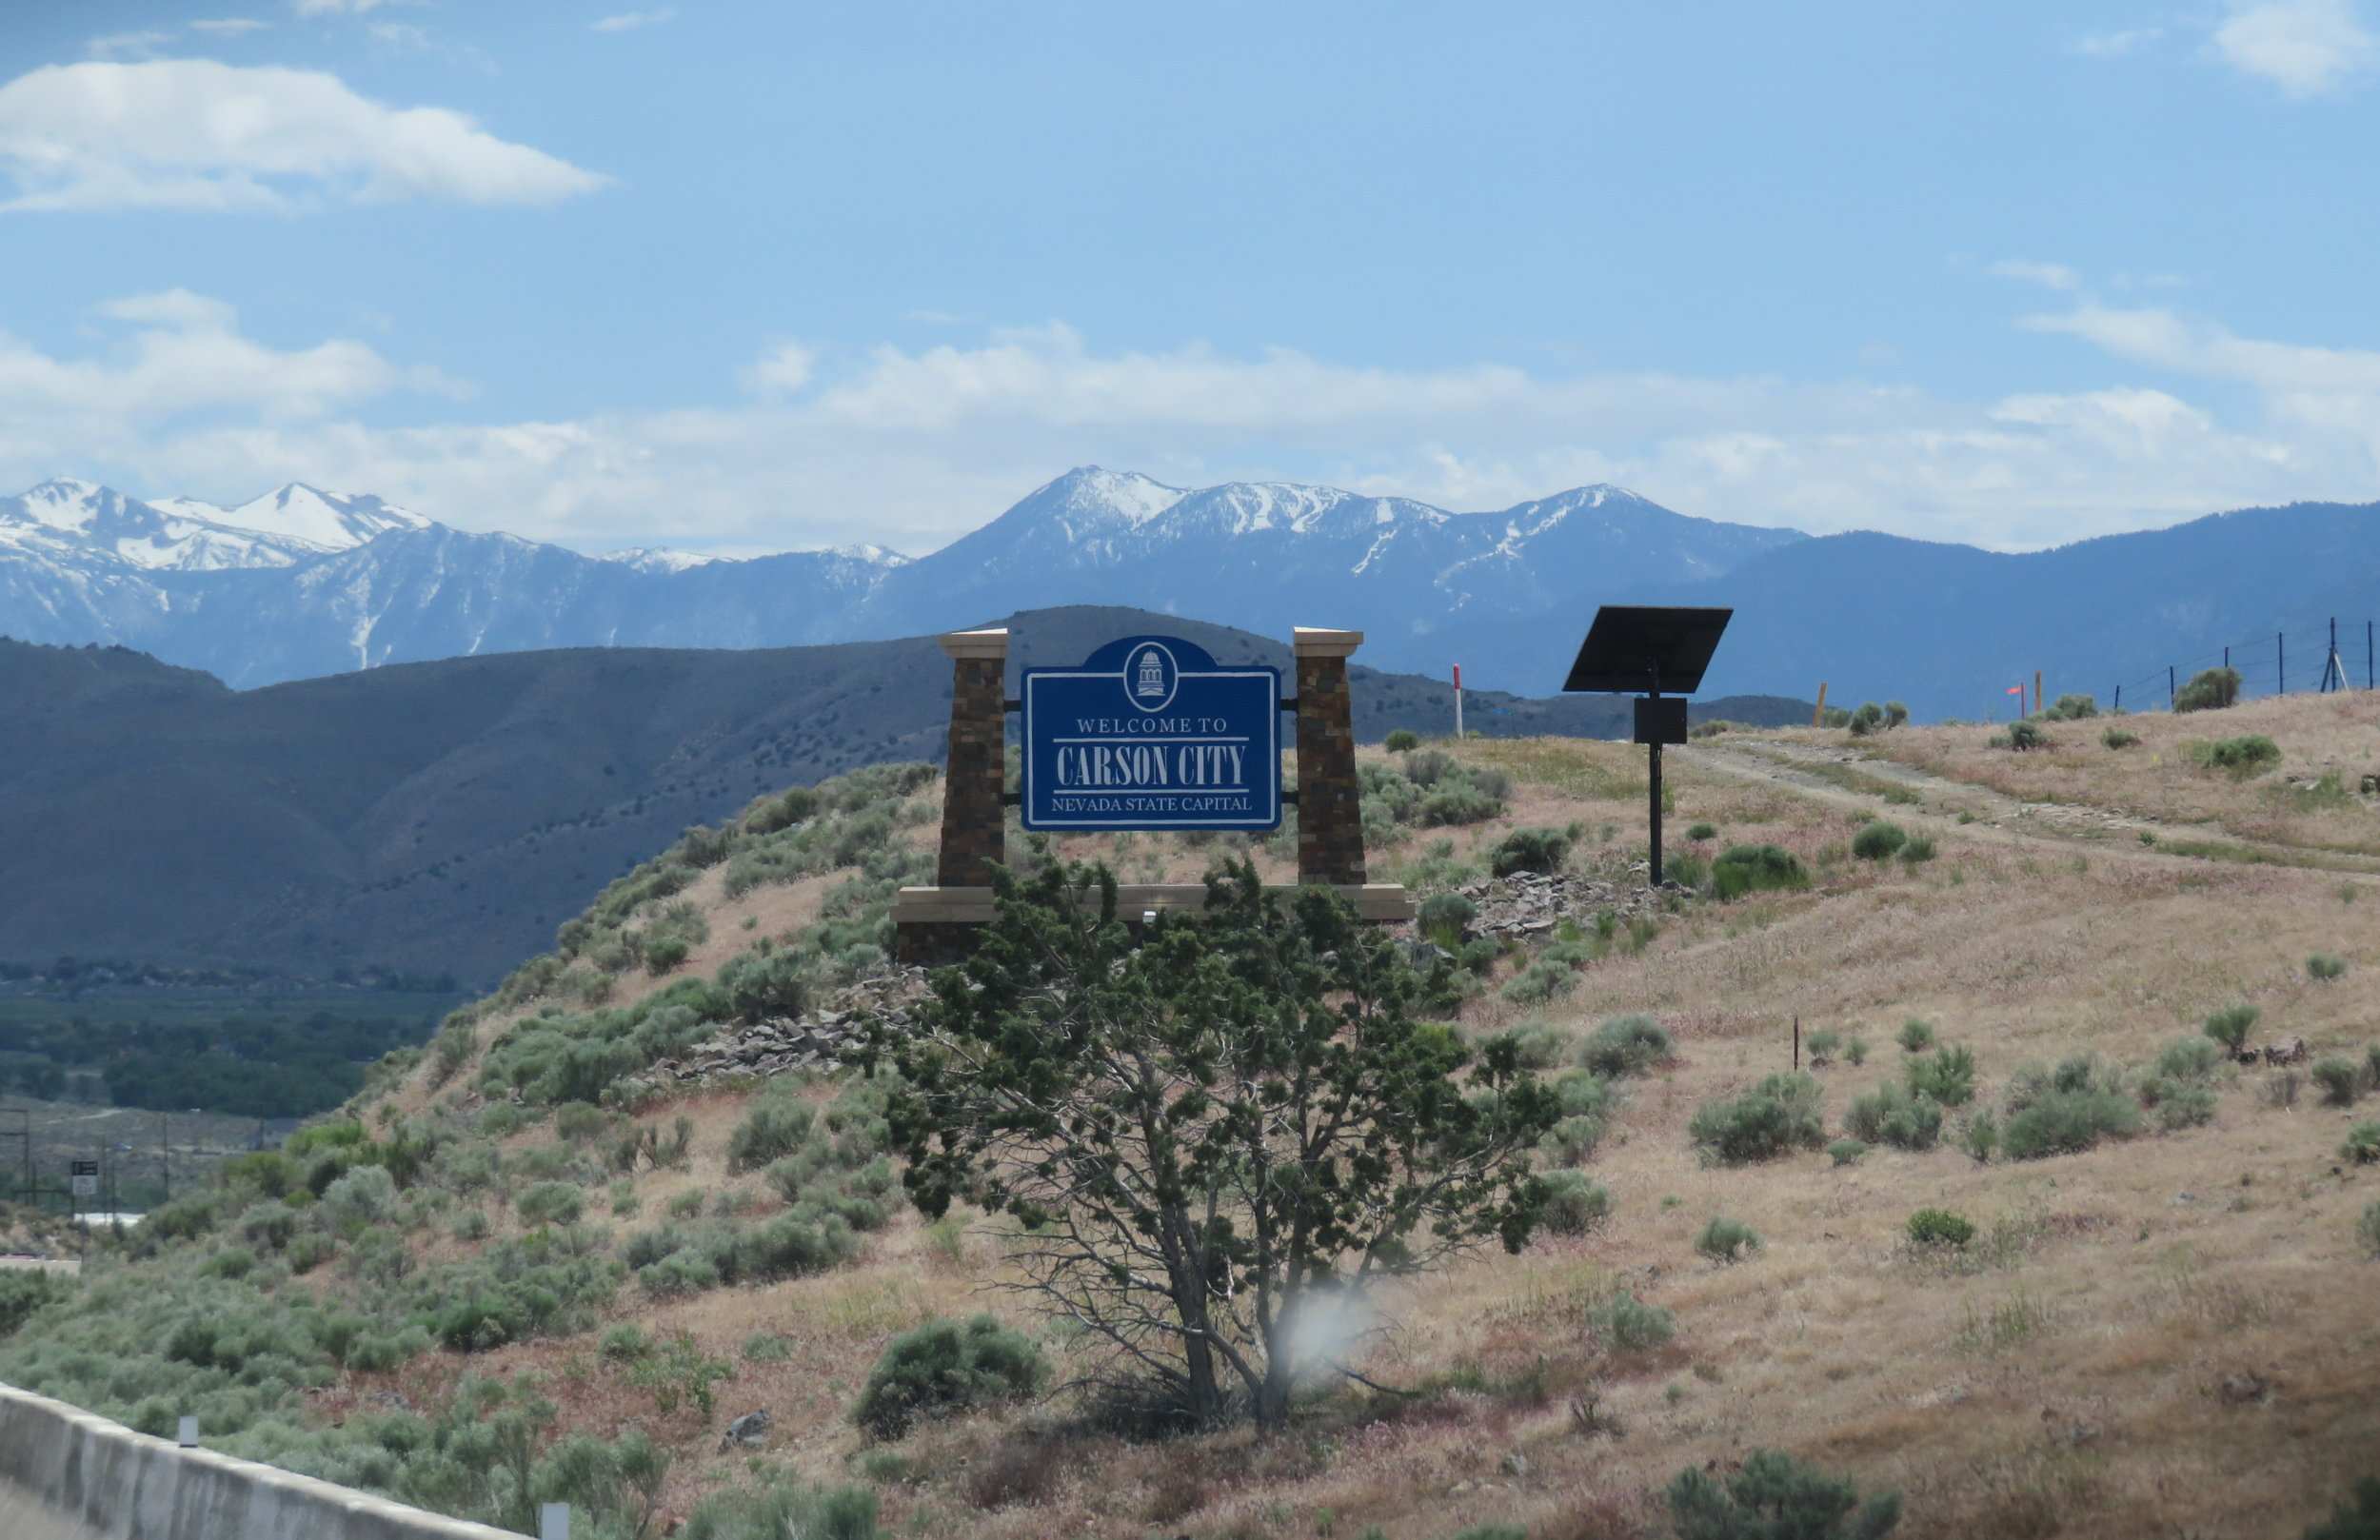 Welcome to Carson City, Nevada